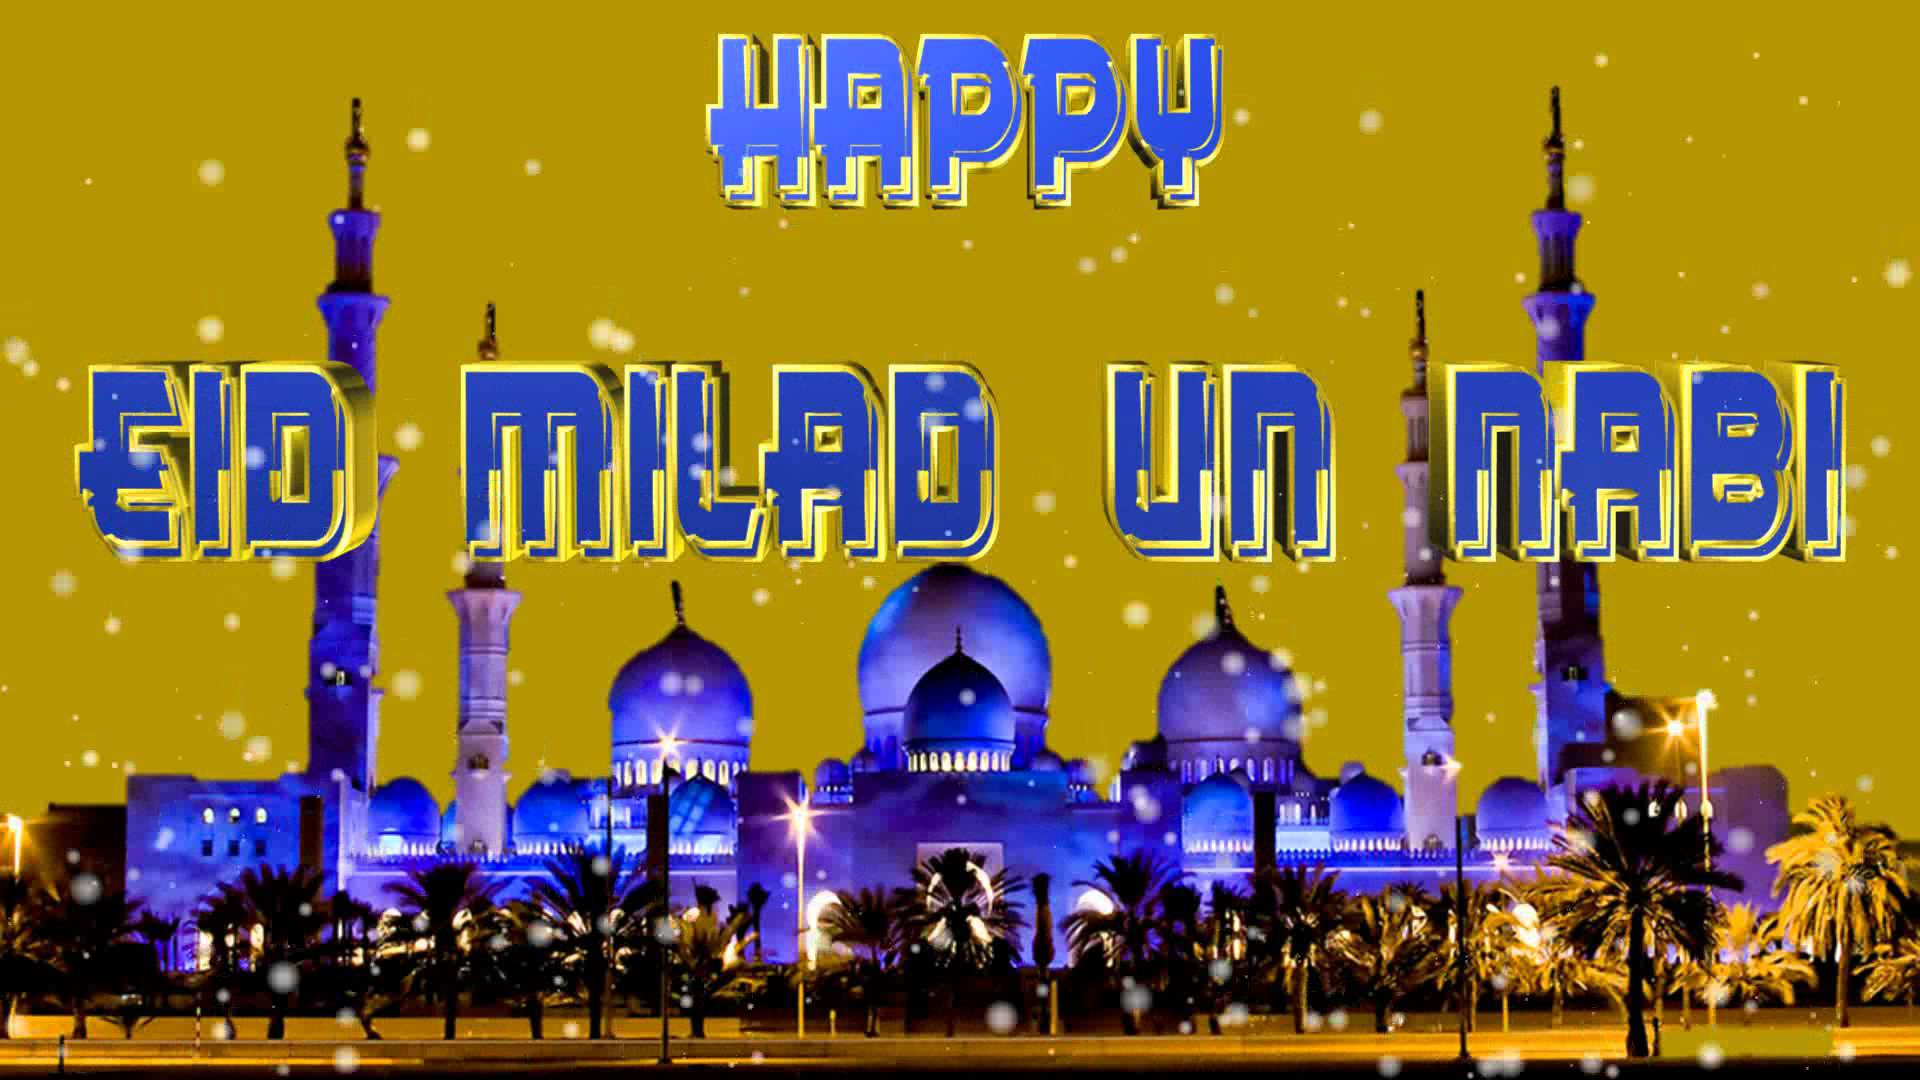 Wallpaper download eid milad un nabi - Happy Eid Milad Un Nabi Pic